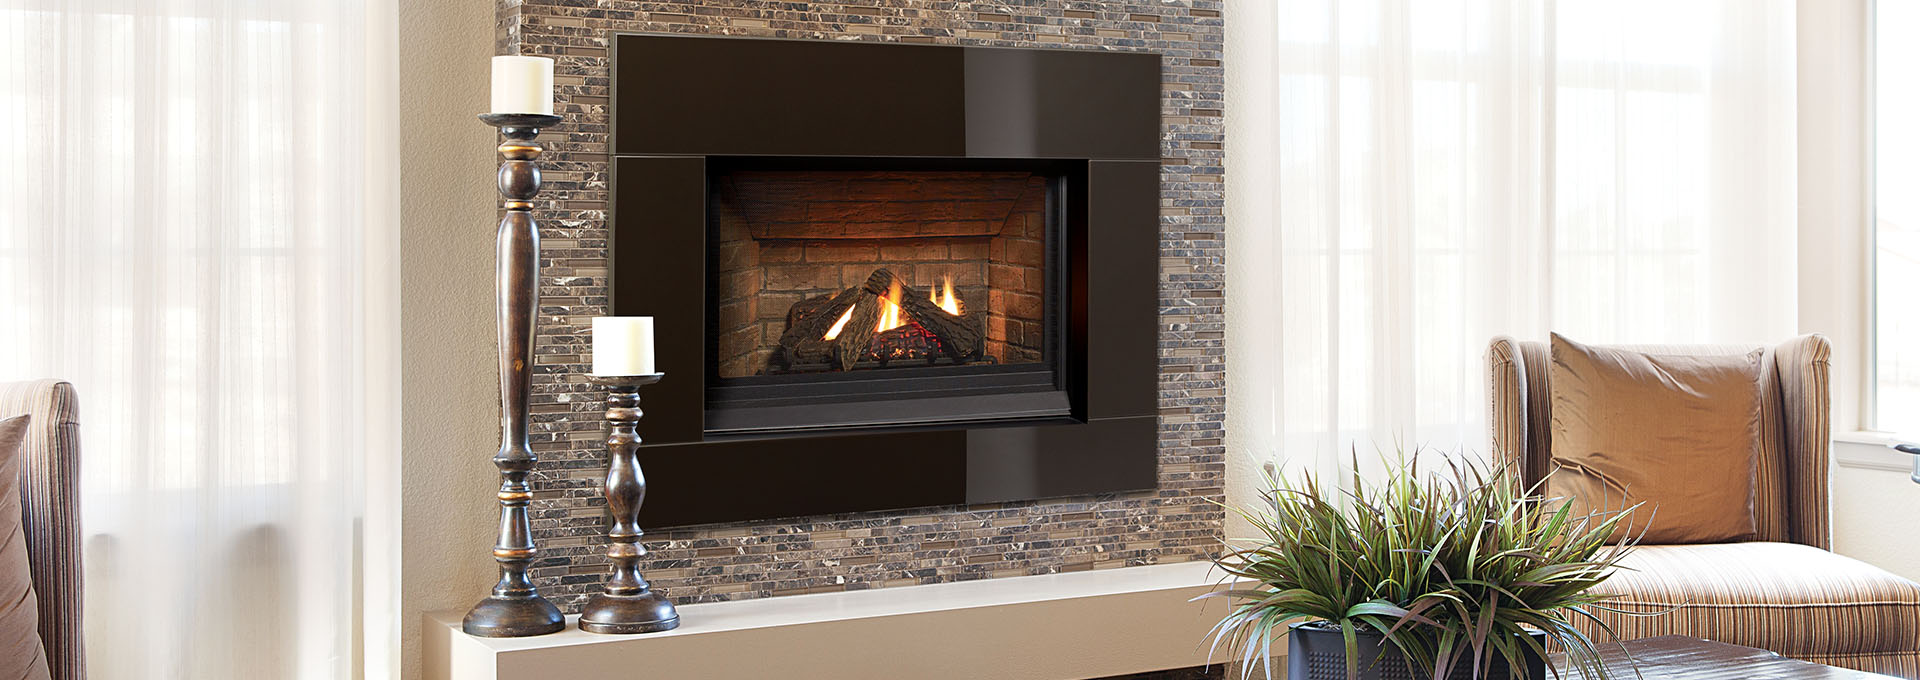 Be ready with Revere and a new propane fireplace or other hearth product. We specialize in installation and service of fireplaces in Hartfield